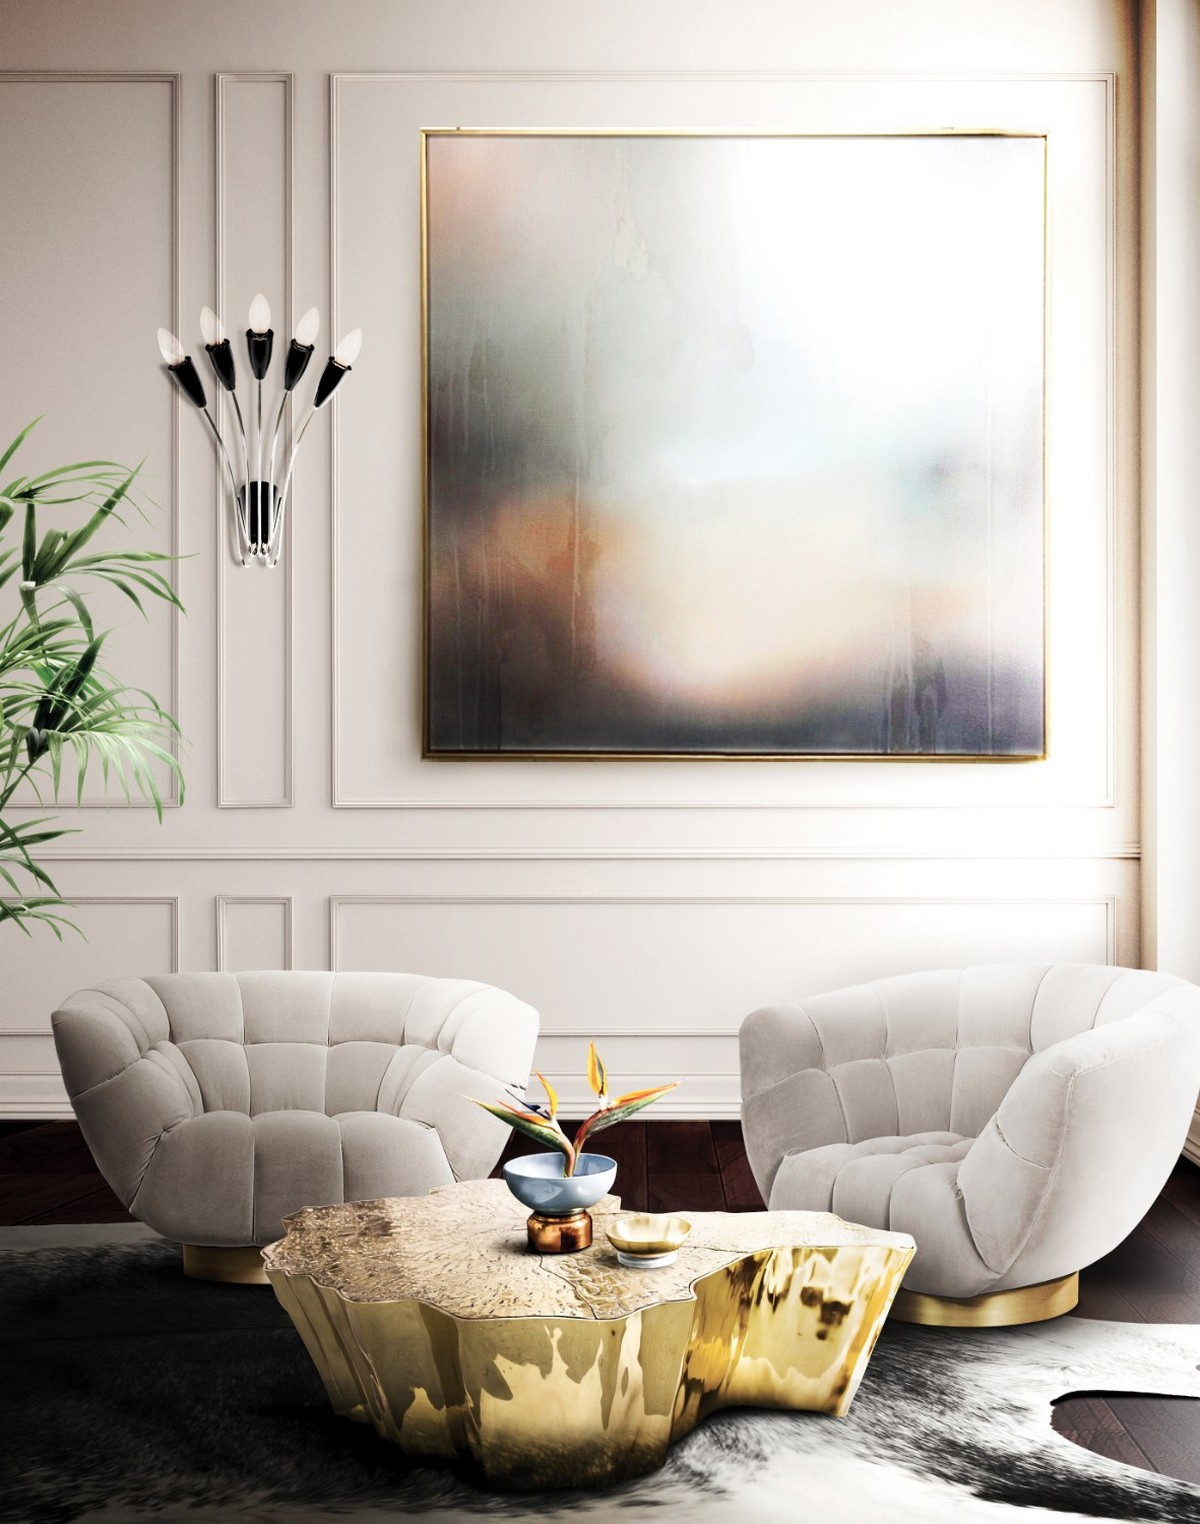 living rooms, living rooms ideas, luxury living rooms, pinterest, living rooms ideas on pinterest, living rooms decor, luxury furniture, living roominspirations